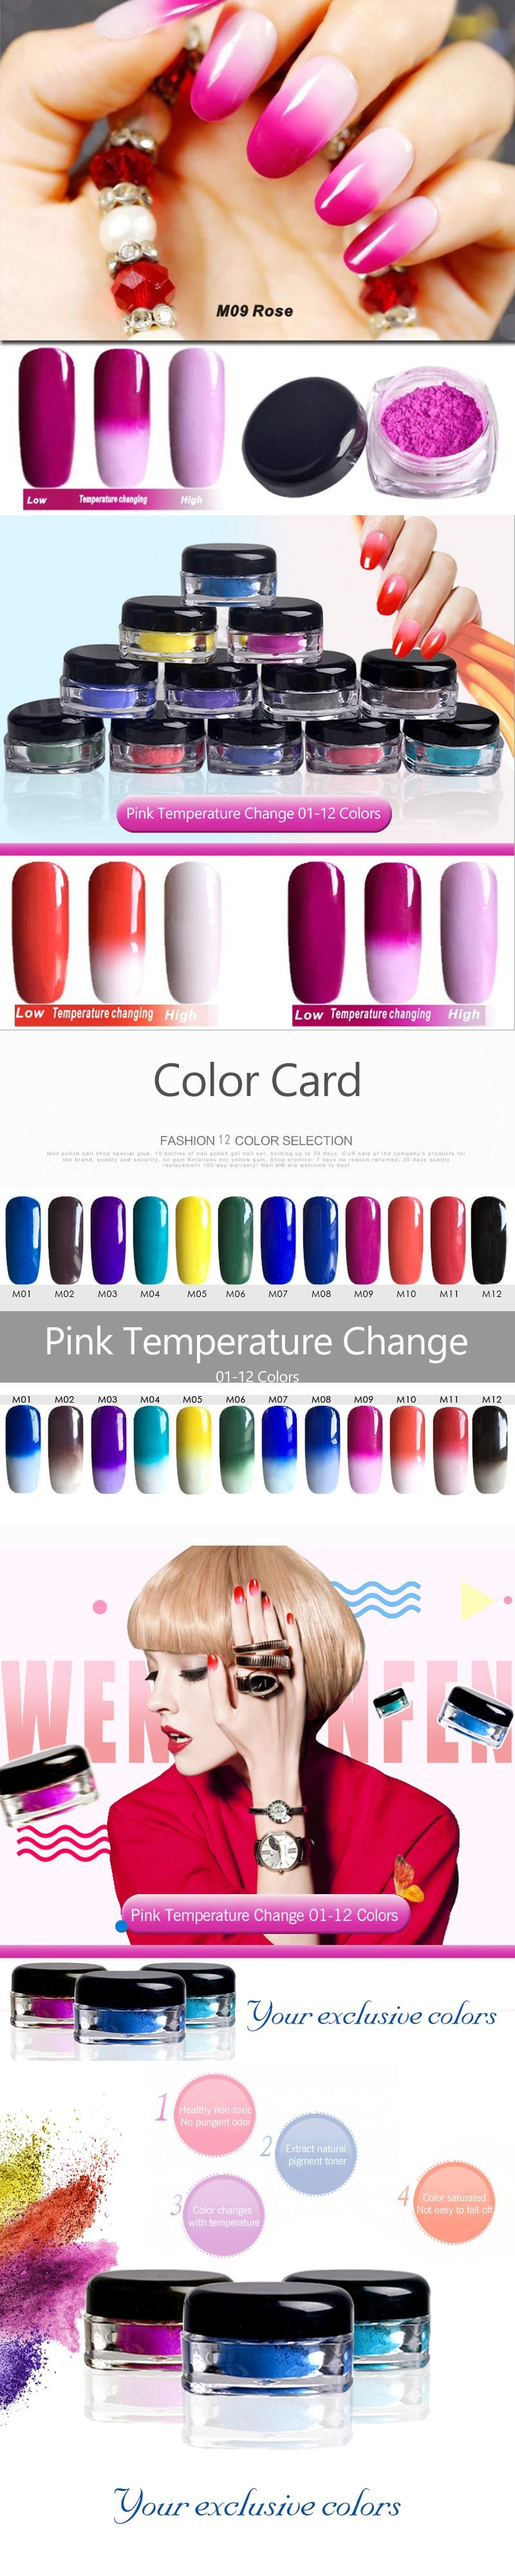 Temperature Color Change Nail Glitter Powder Chrome Bling Chameleon ...